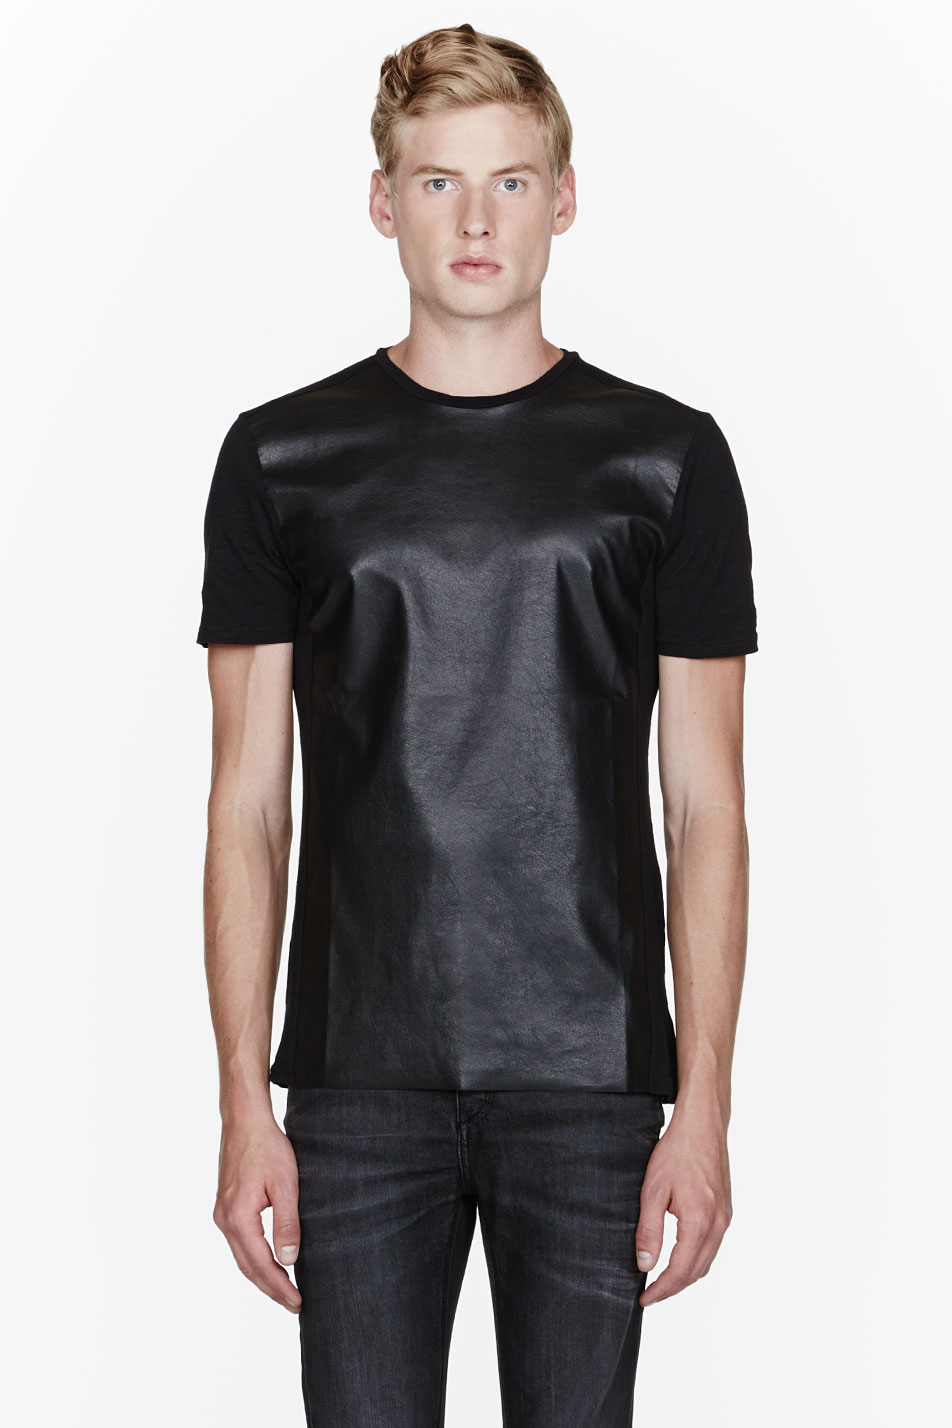 Mens Leather Shirts Black